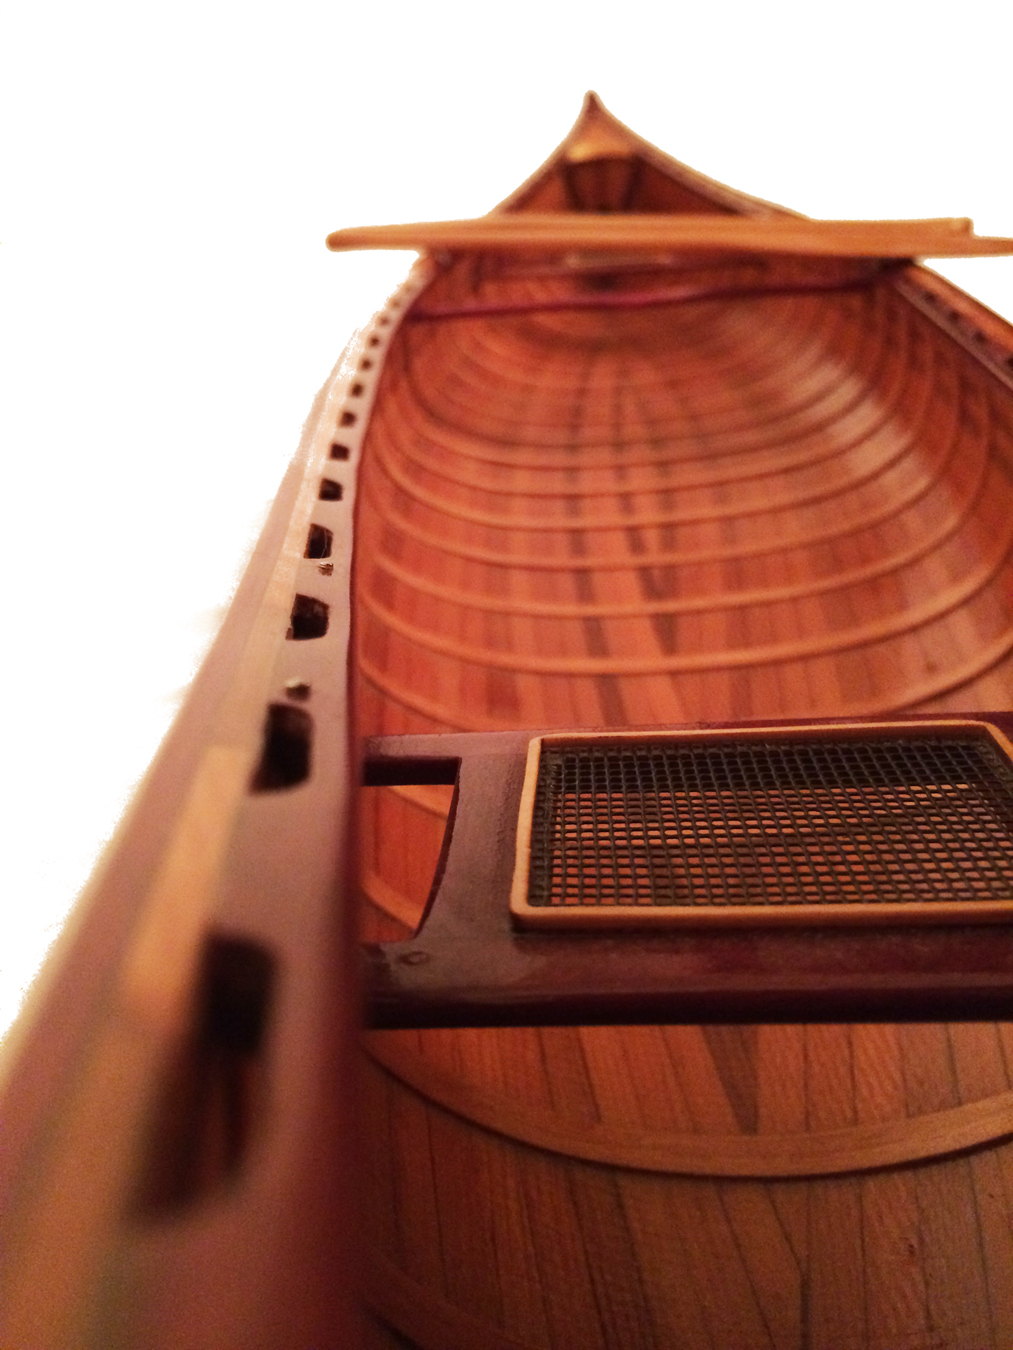 test miniature cedar wood canoe 05